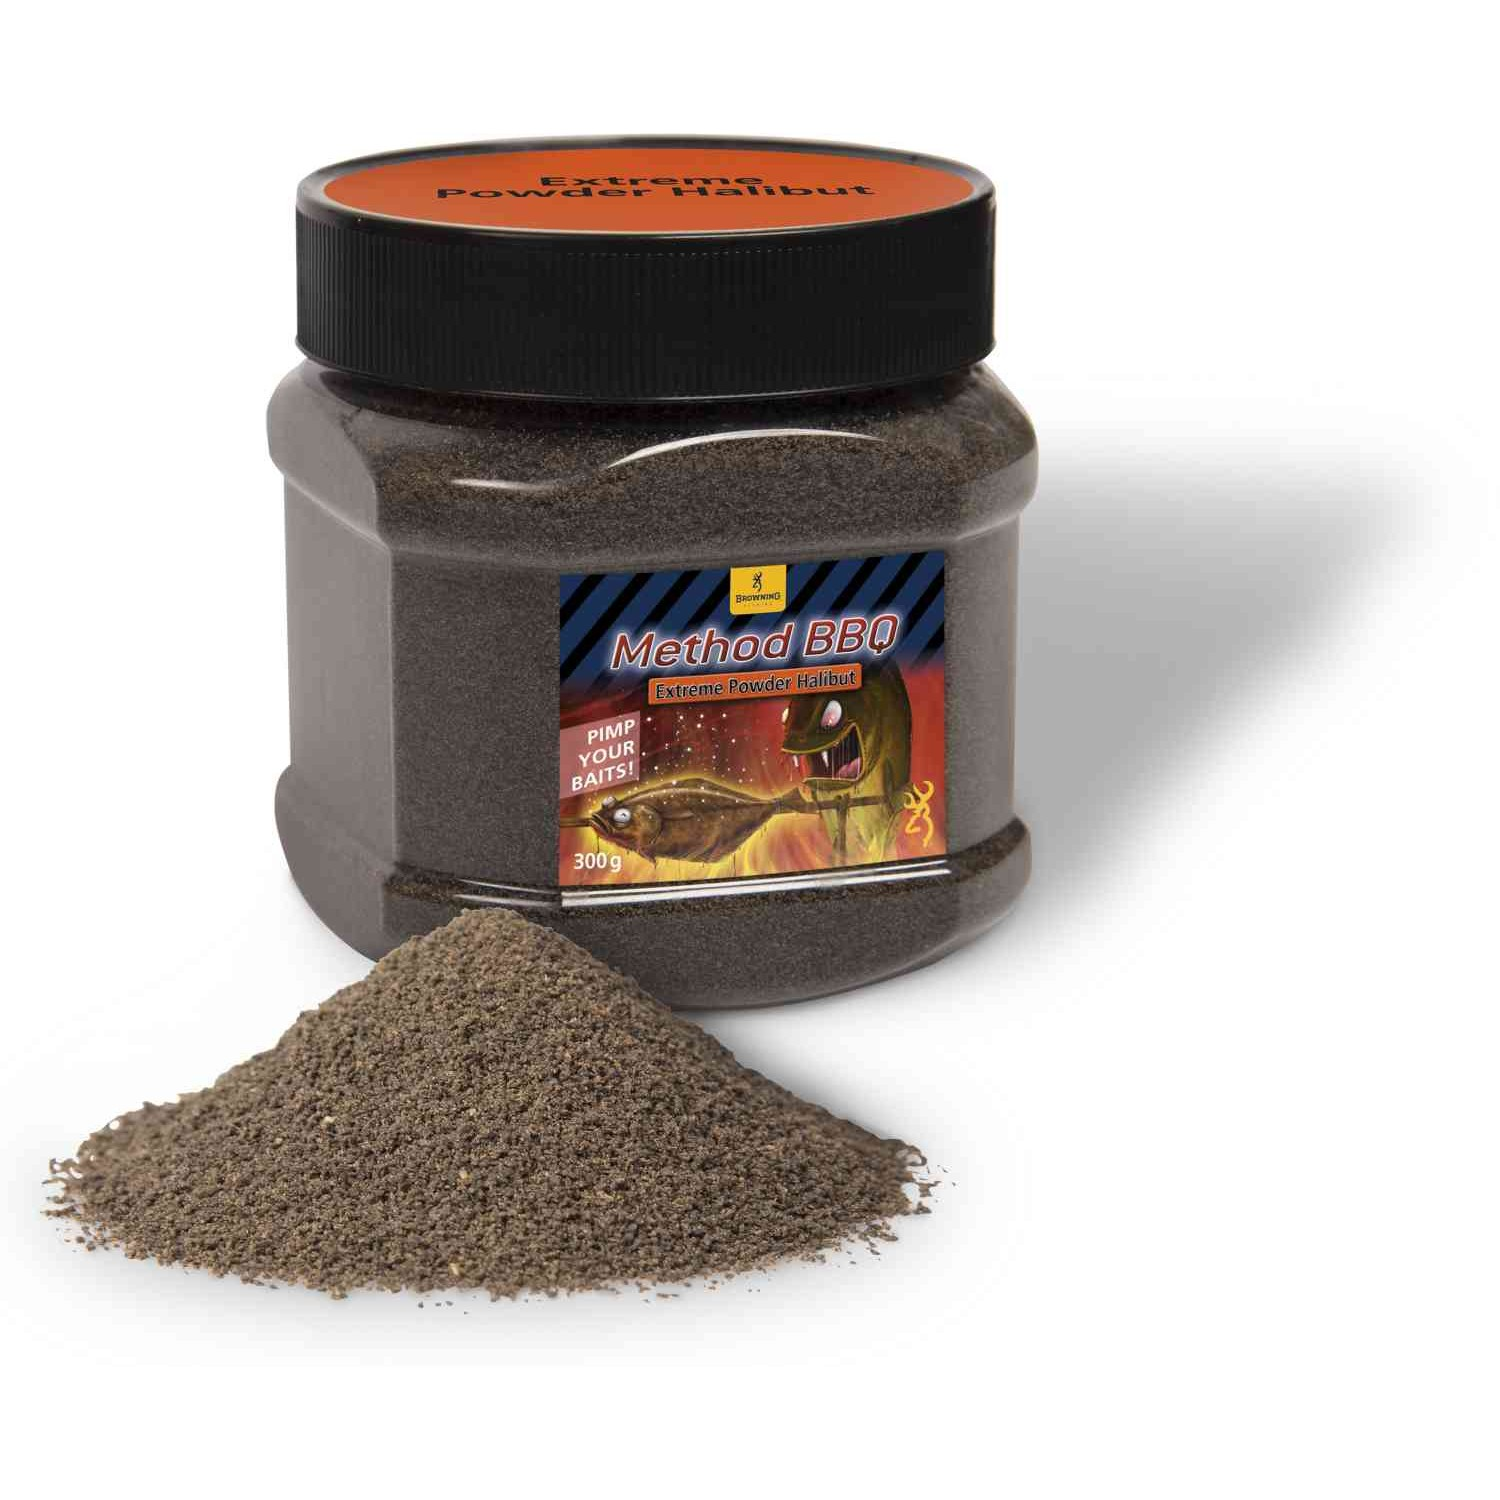 Browning Method BBQ Extreme Powder Halibut 300g